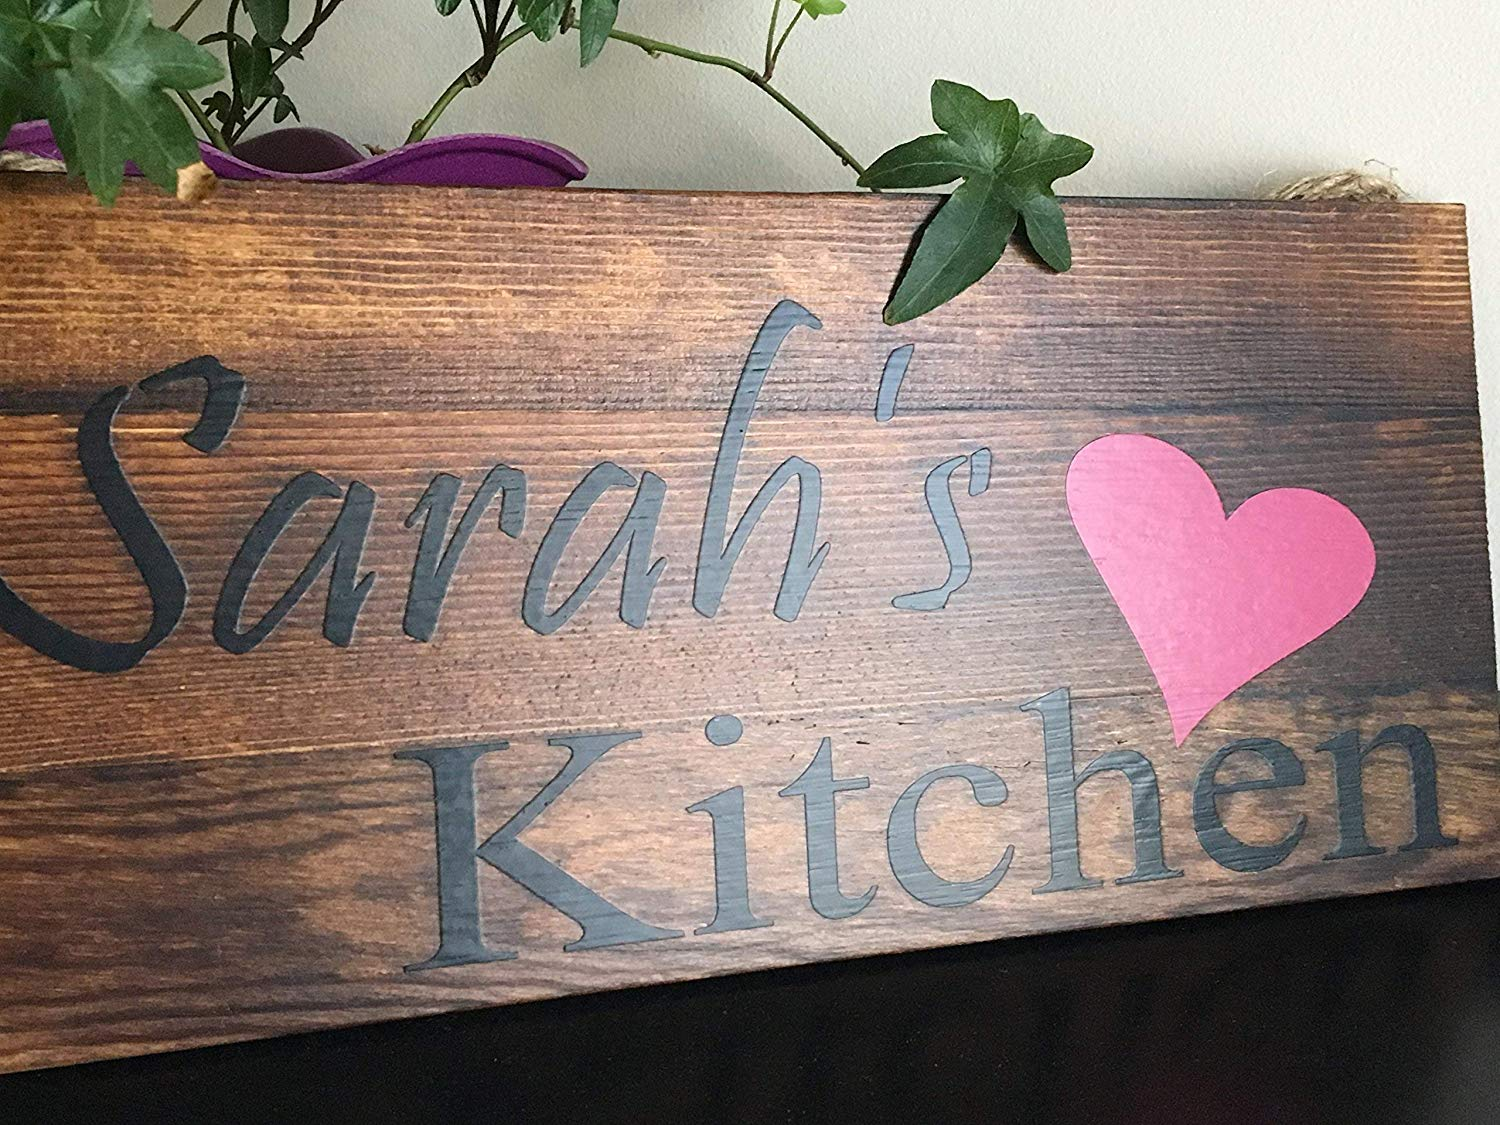 CUSTOM HANDCRAFTED KITCHEN SIGNS WITH JUTE ROPE 12x5 PERSONALIZED RUSTIC COUNTRY KITCHEN SIGNS, UNIQUE GIFT, HOUSEWARMING GIFT, BIRTHDAY GIFT, CHRISTMAS GIFT, WEDDING GIFT, by Heartland Country Decor